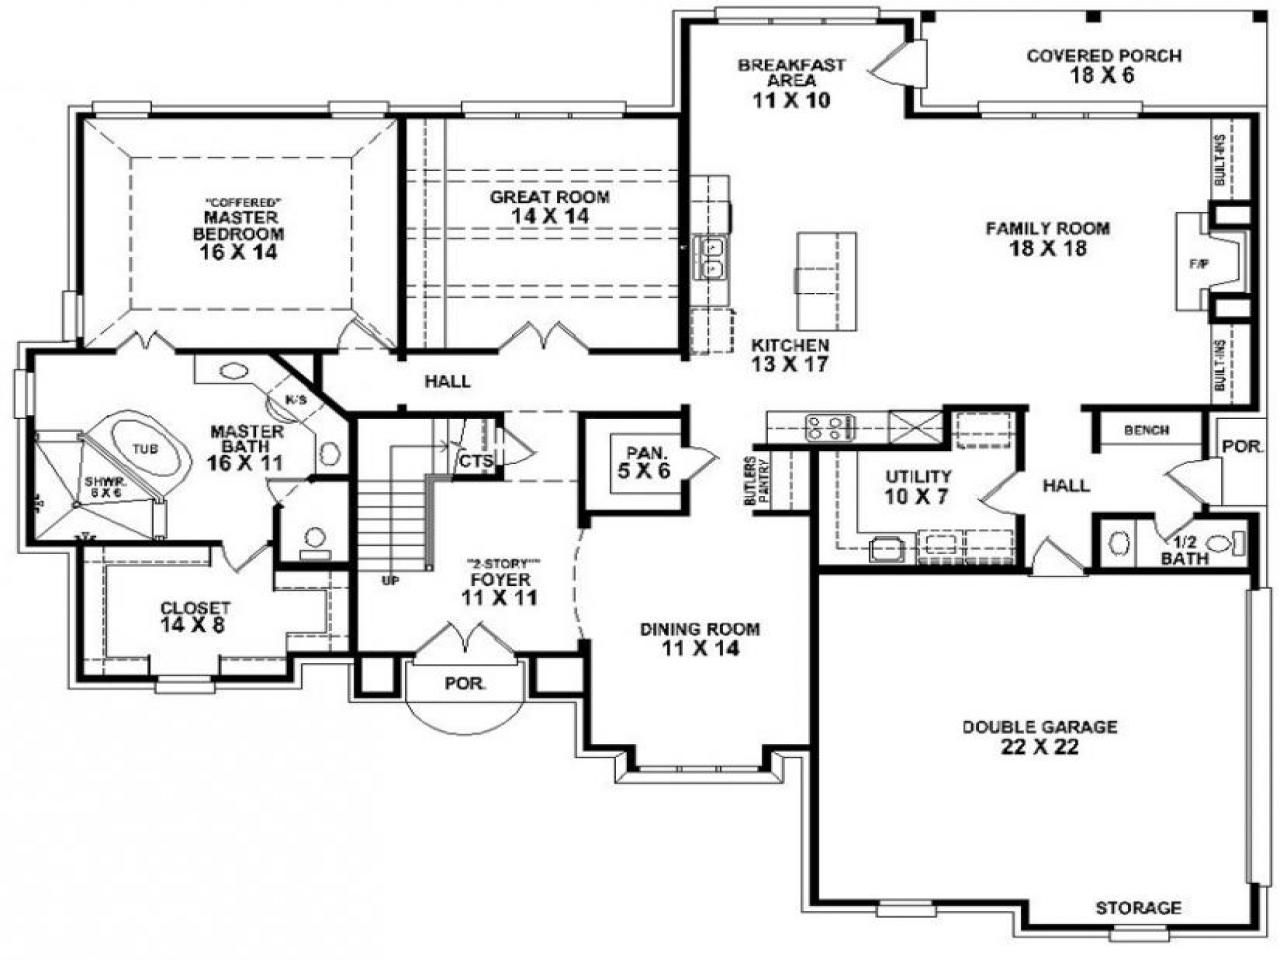 4 bedroom 3 bath mobile home floor plans 4 bedroom 3 bath for 4 bedroom 2 bath house plans